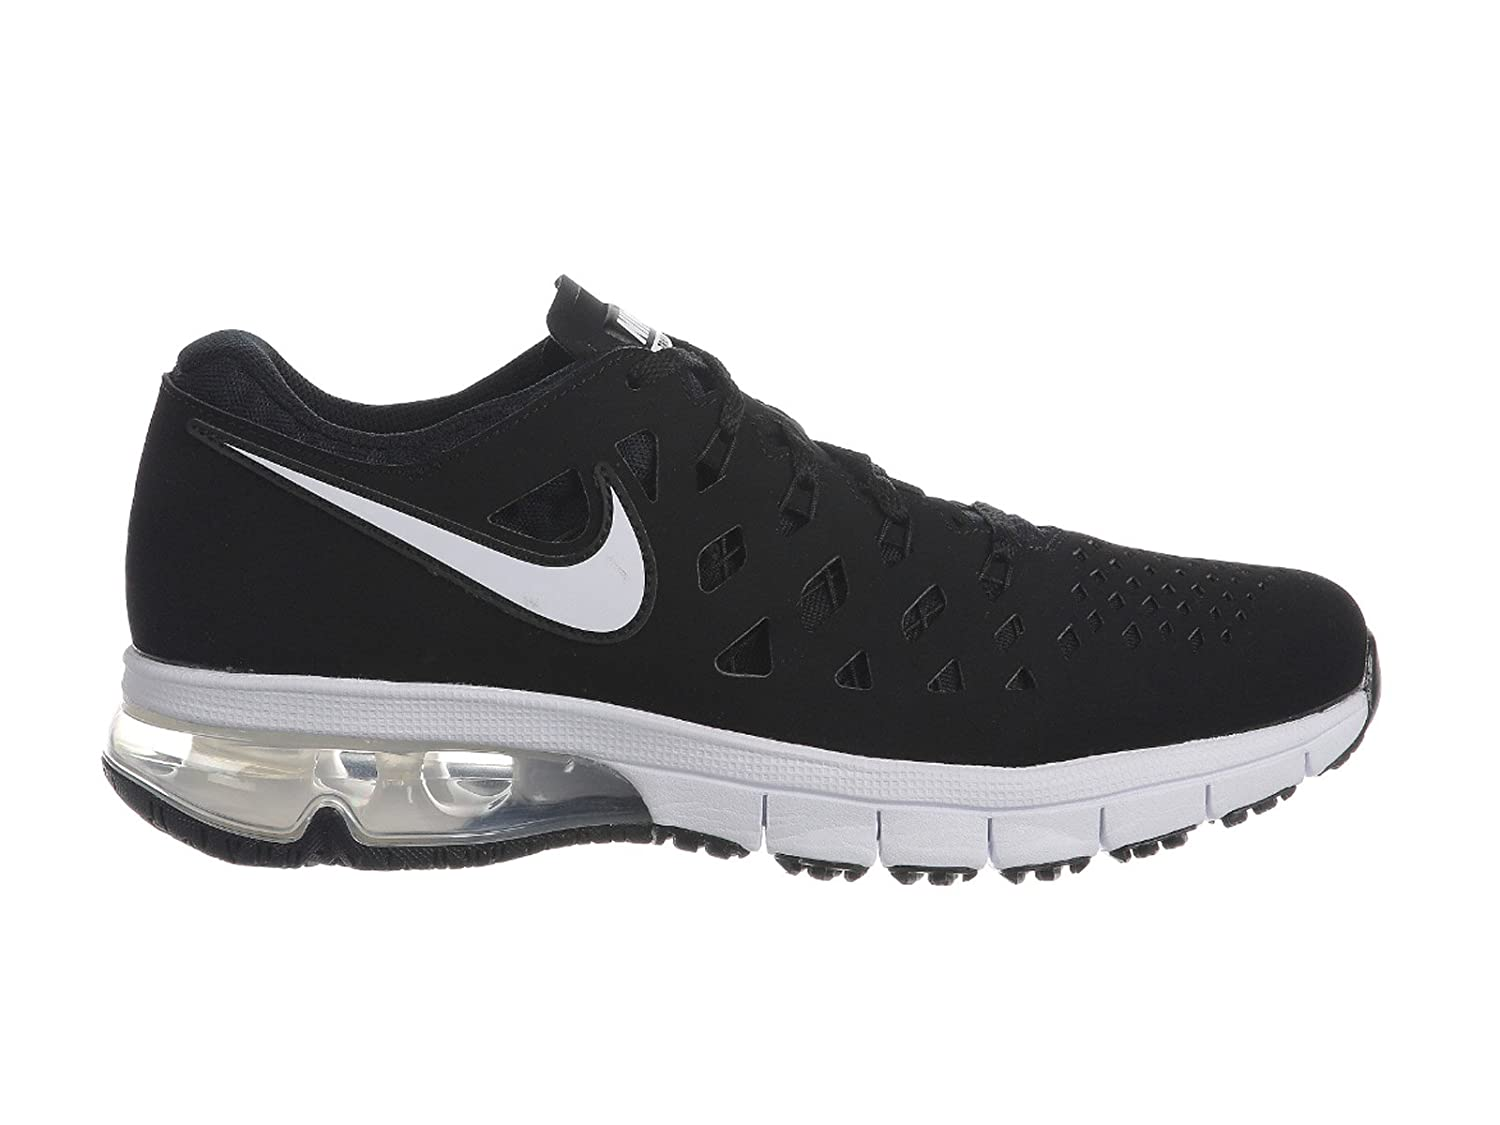 NIKE Mens Air Trainer 180 Synthetic Cross-Trainers Shoes B07211TD6M 8.5 D(M) US|Black/White-black